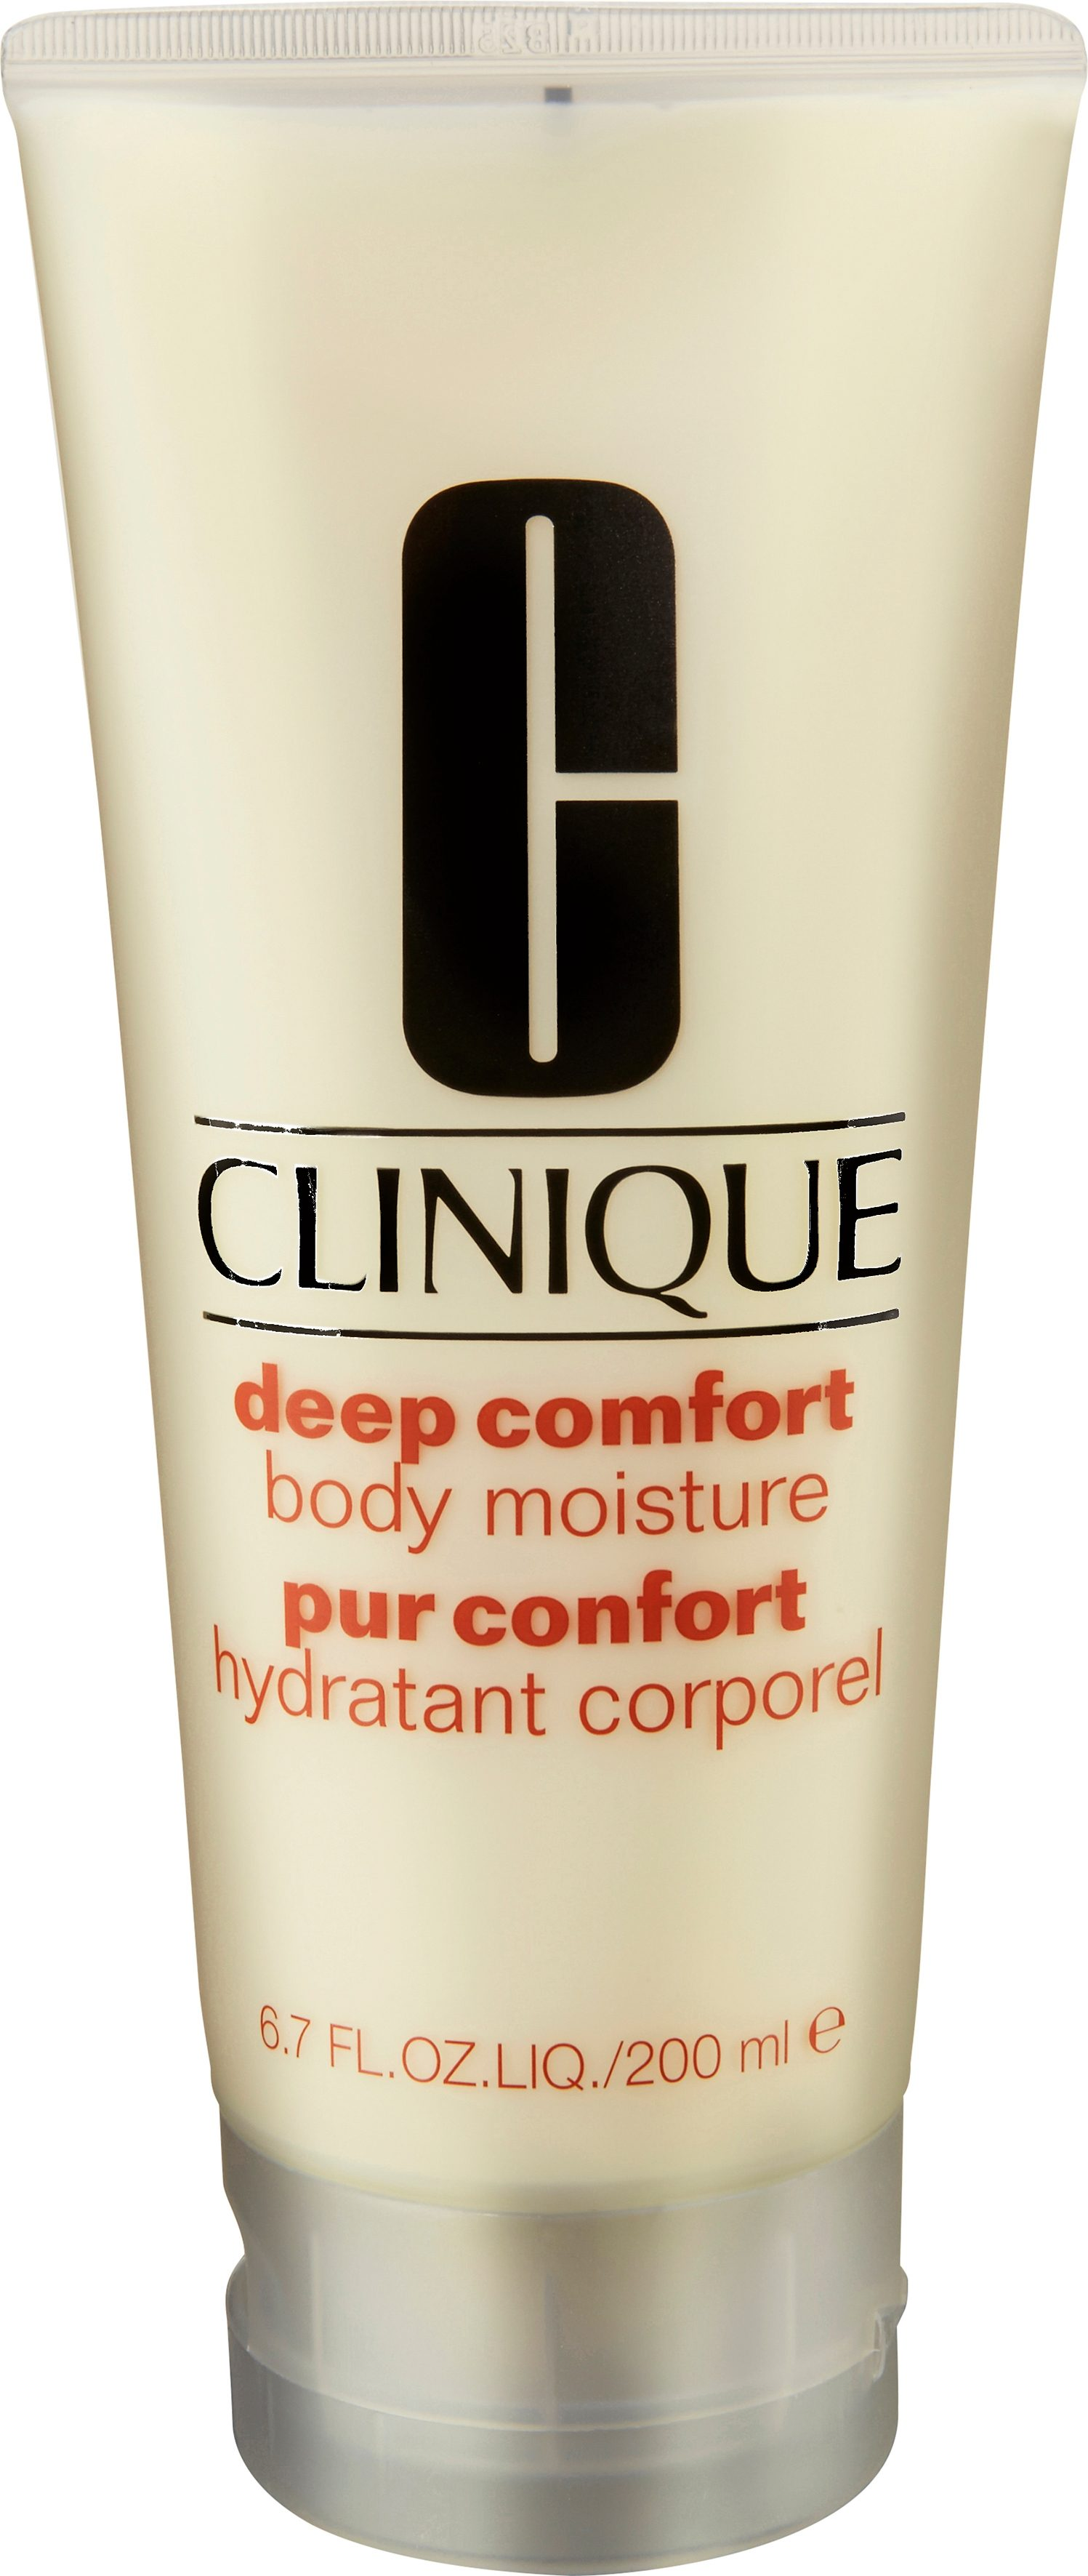 Clinique, »Deep Comfort Body Moisture«, Körperlotion